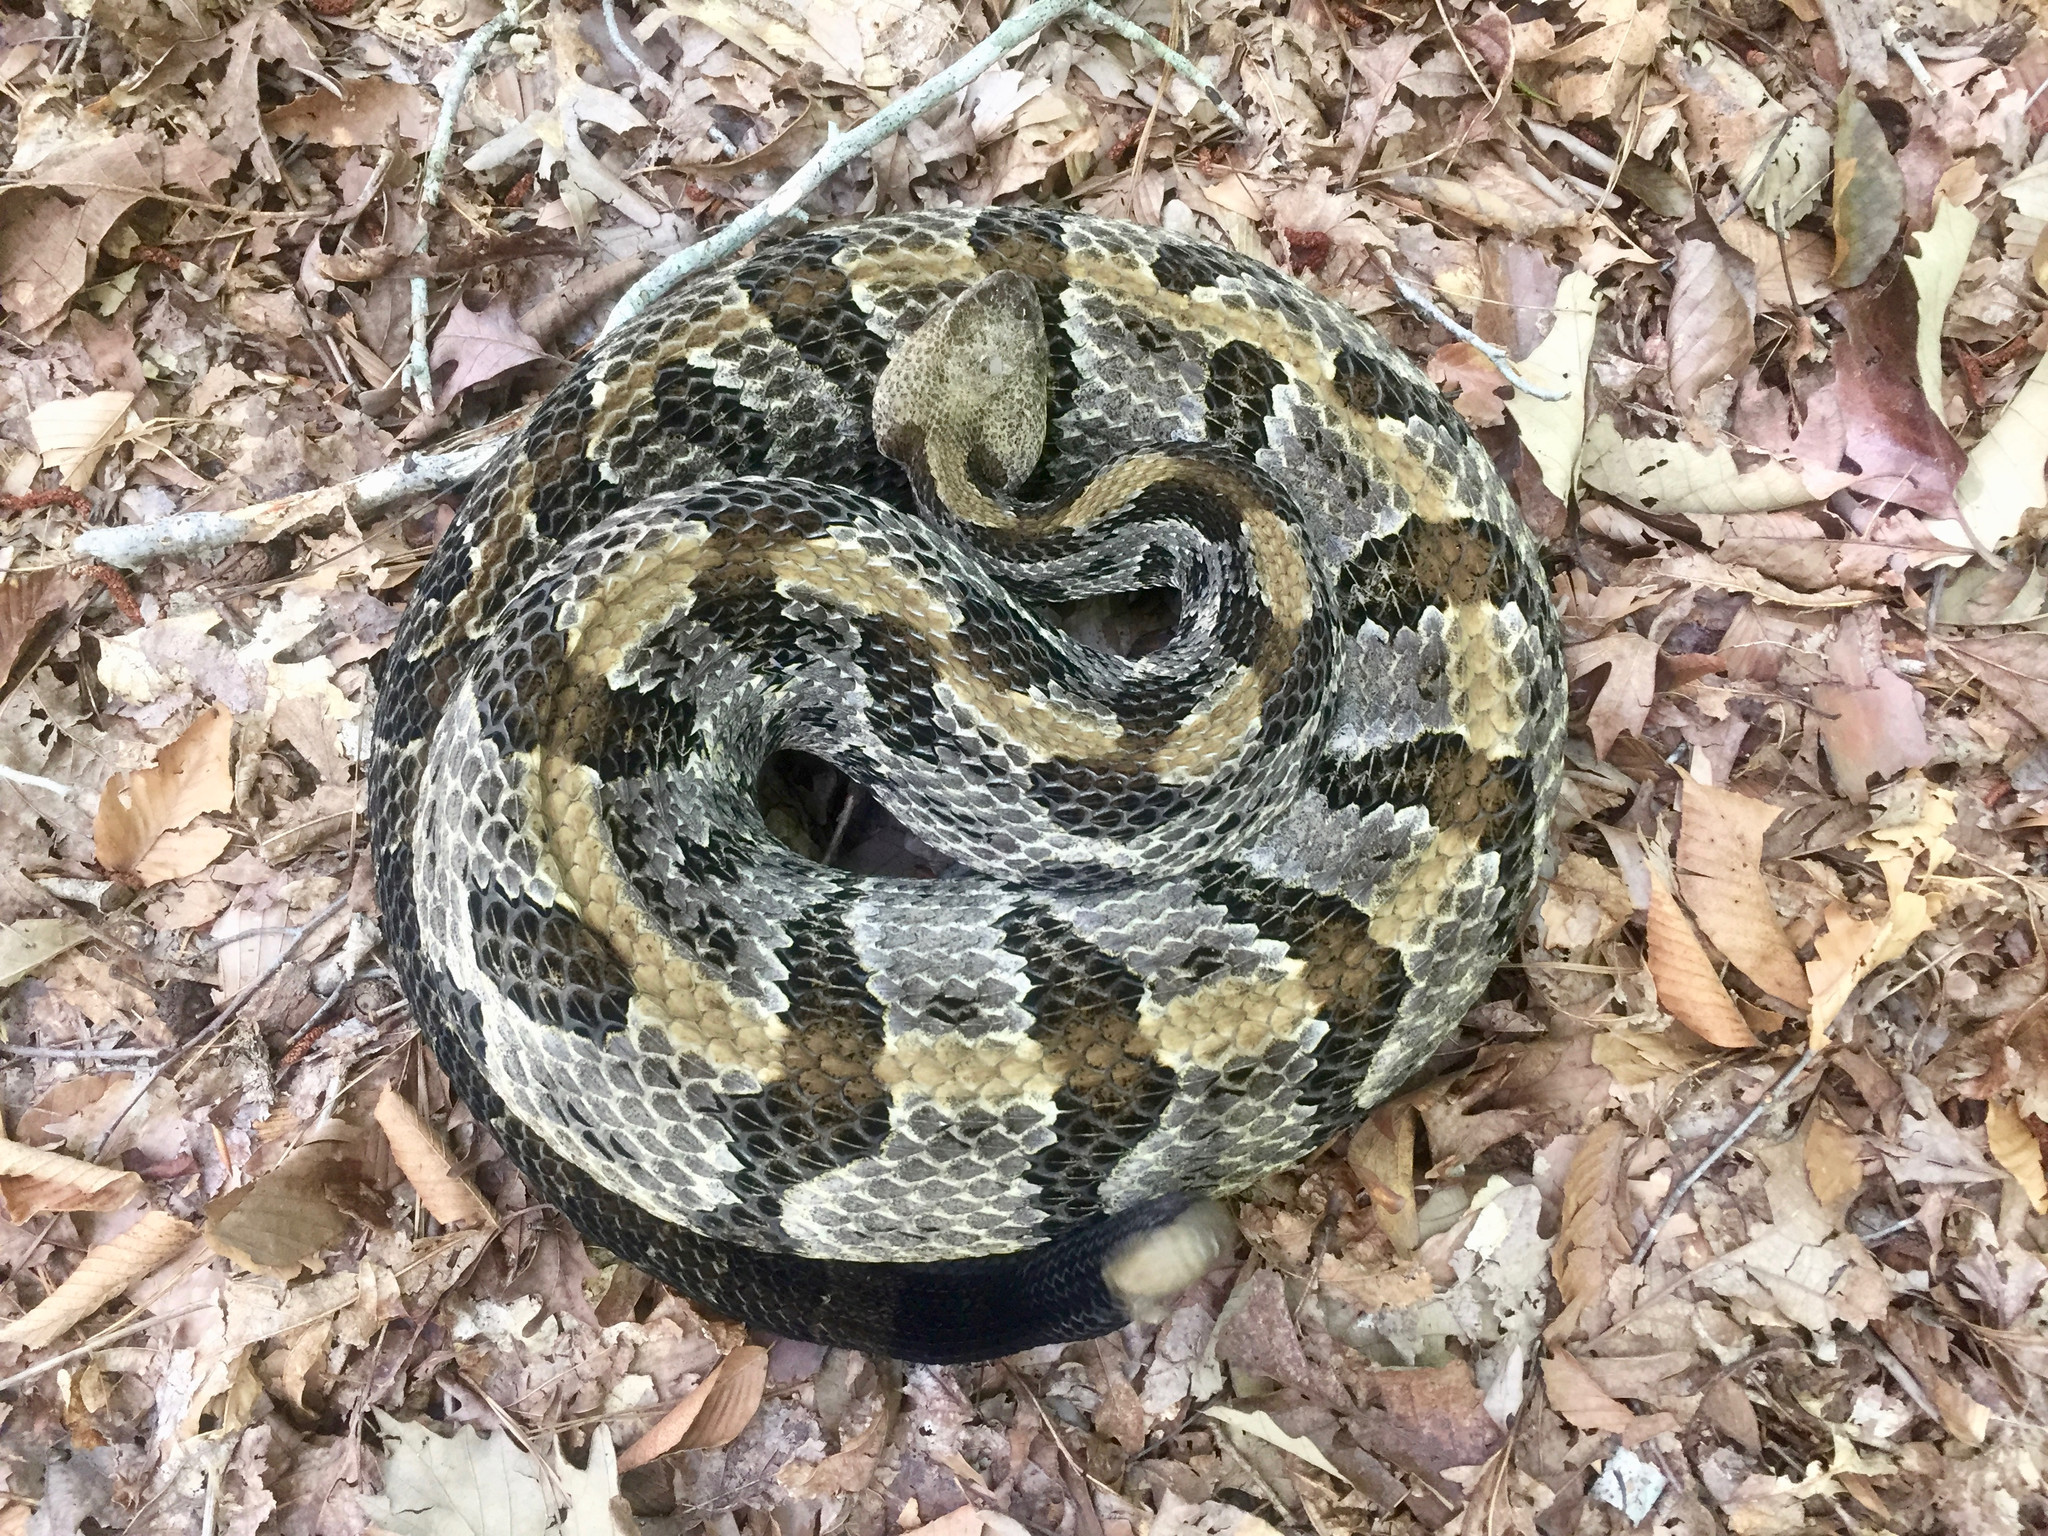 Endangered Rattlesnakes Spotted In Chesapeake Just Leave It Alone The Virginian Pilot The Virginian Pilot,Types Of Cacti With Pictures